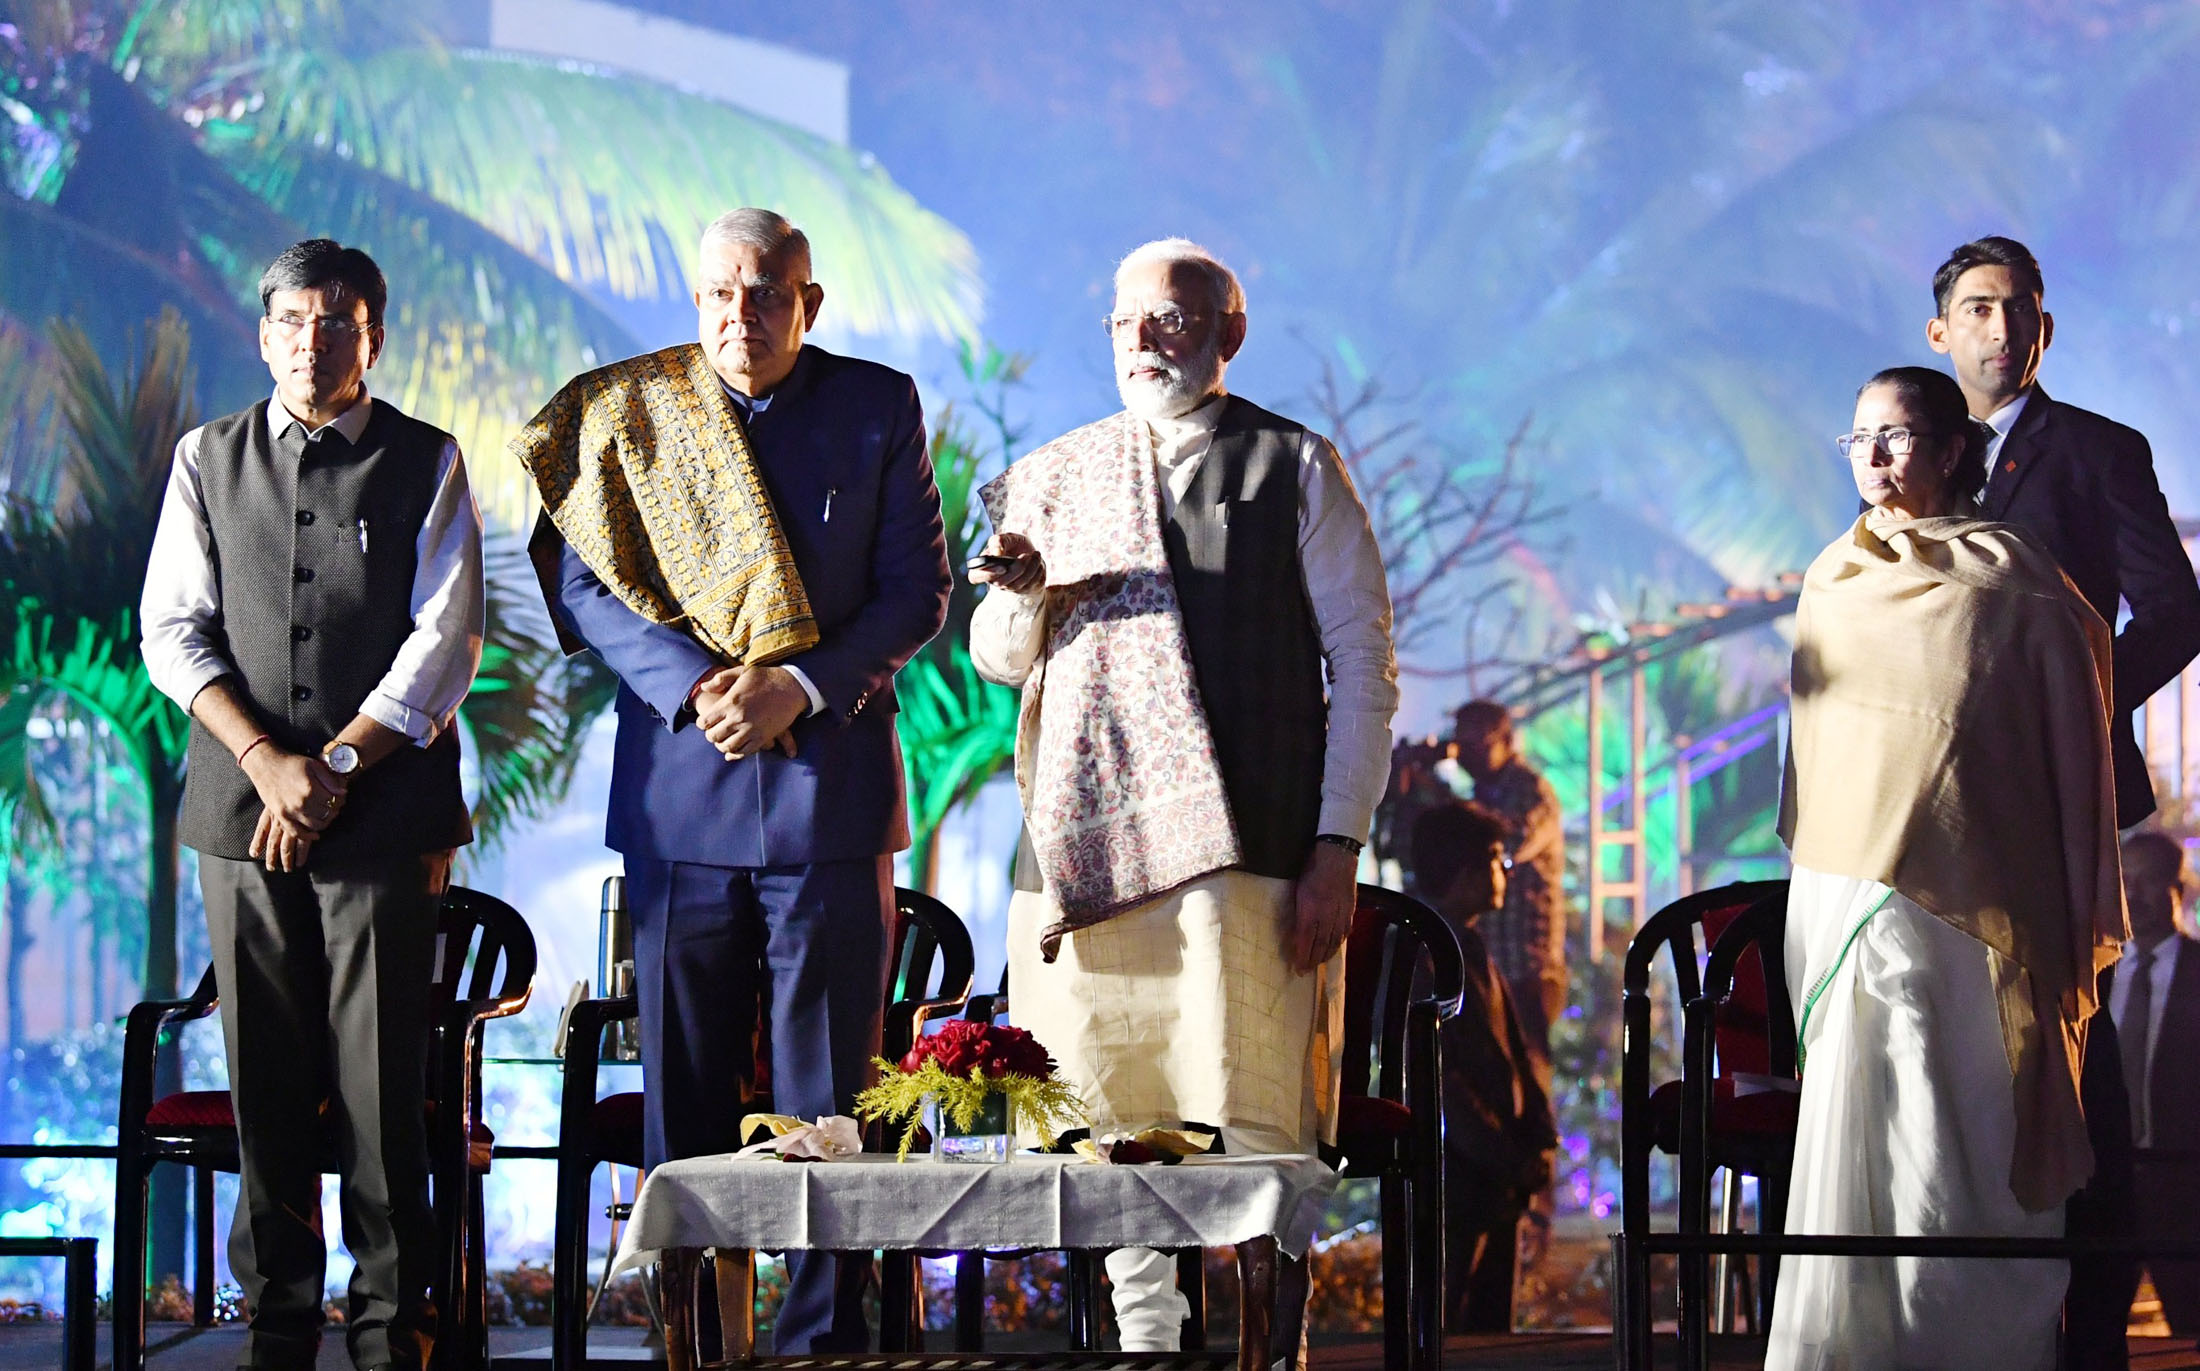 PM attends 150th anniversary celebration of Kolkata Port Trust in Kolkata; launches Interactive Light & Sound Show of Rabindra Setu